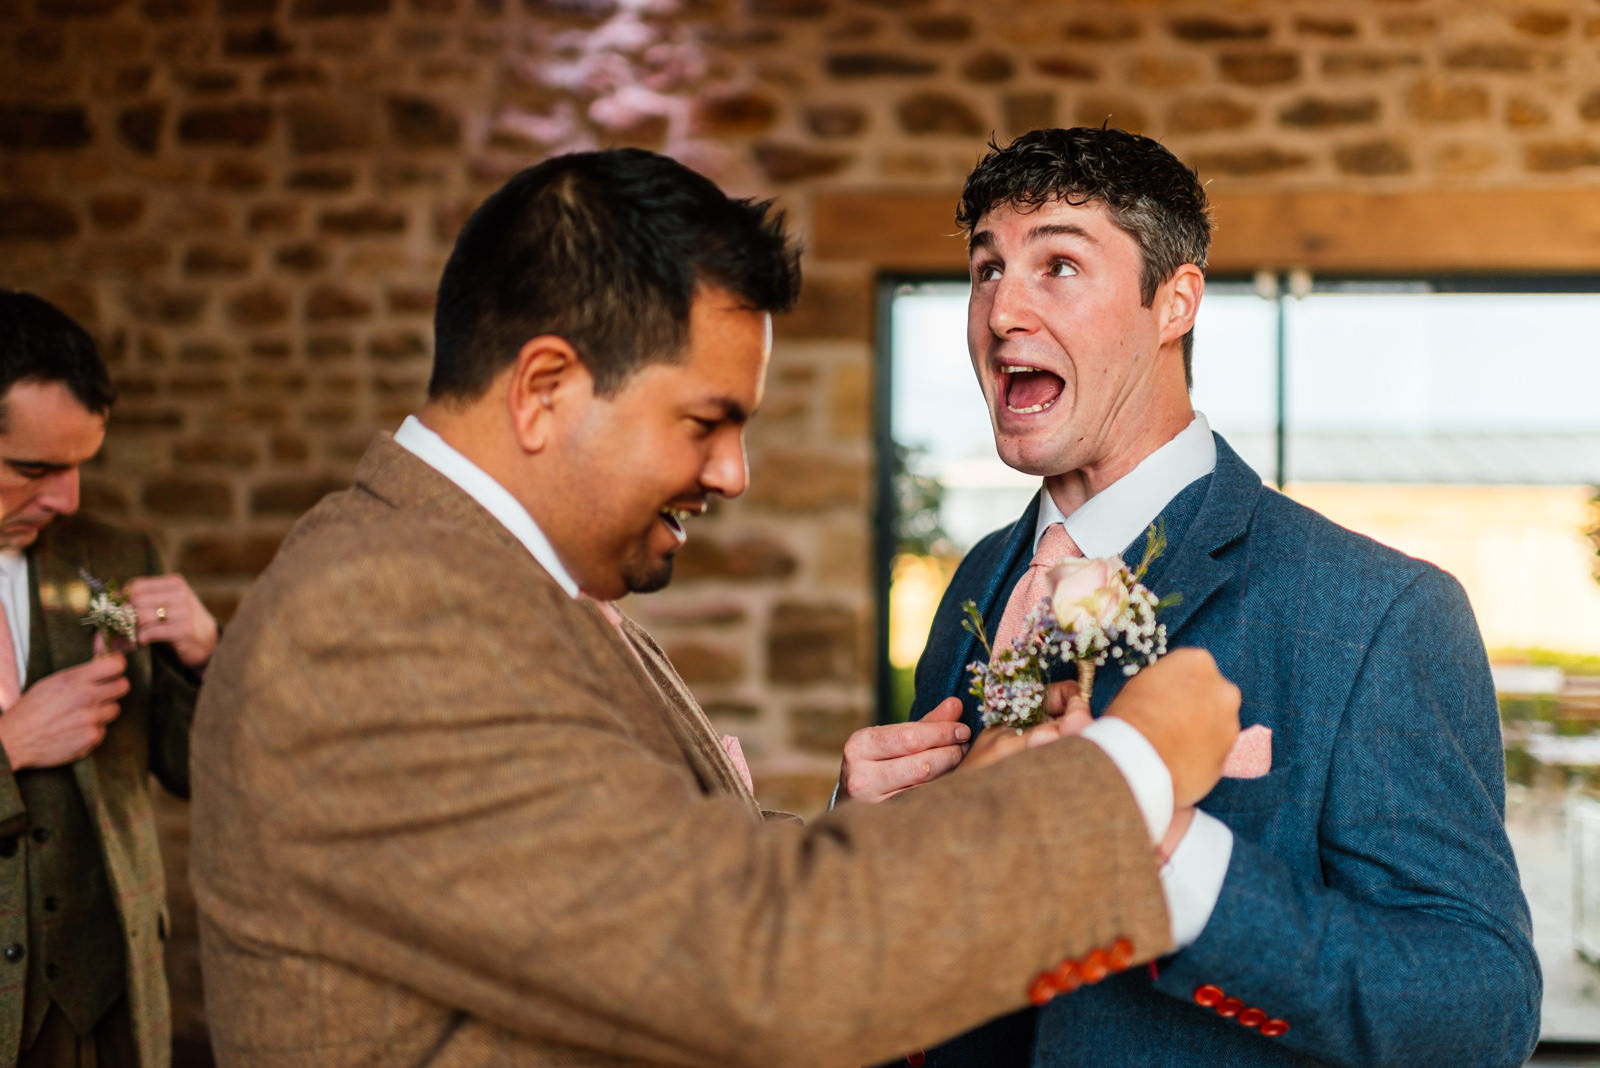 groom messing around when putting on his button hole